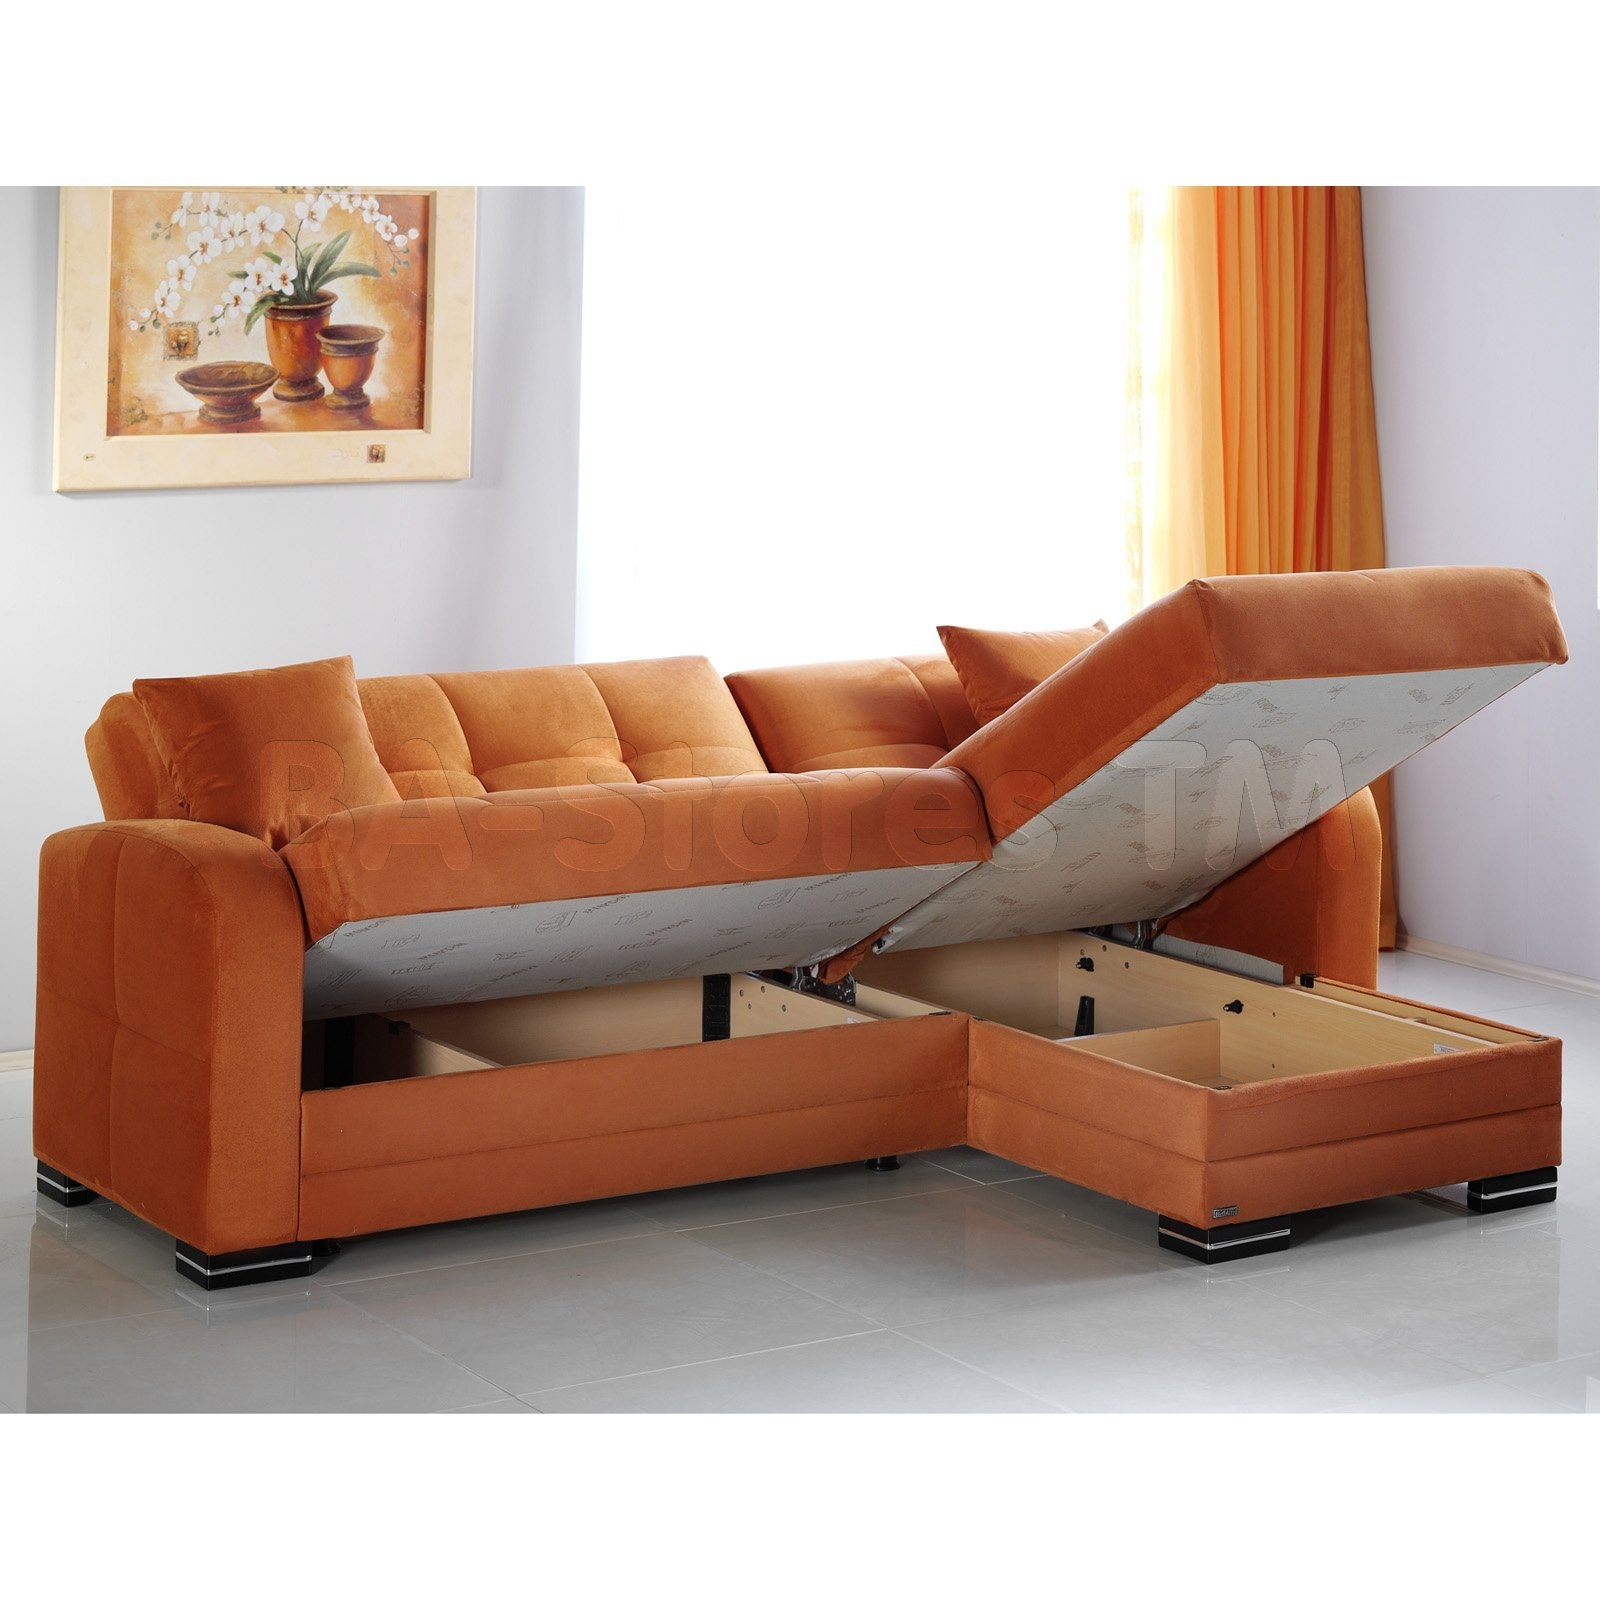 53 Orange Sofa Muji Orange Sofa Orange Pinterest Avworld In Contemporary Fabric Sofas (Image 1 of 15)